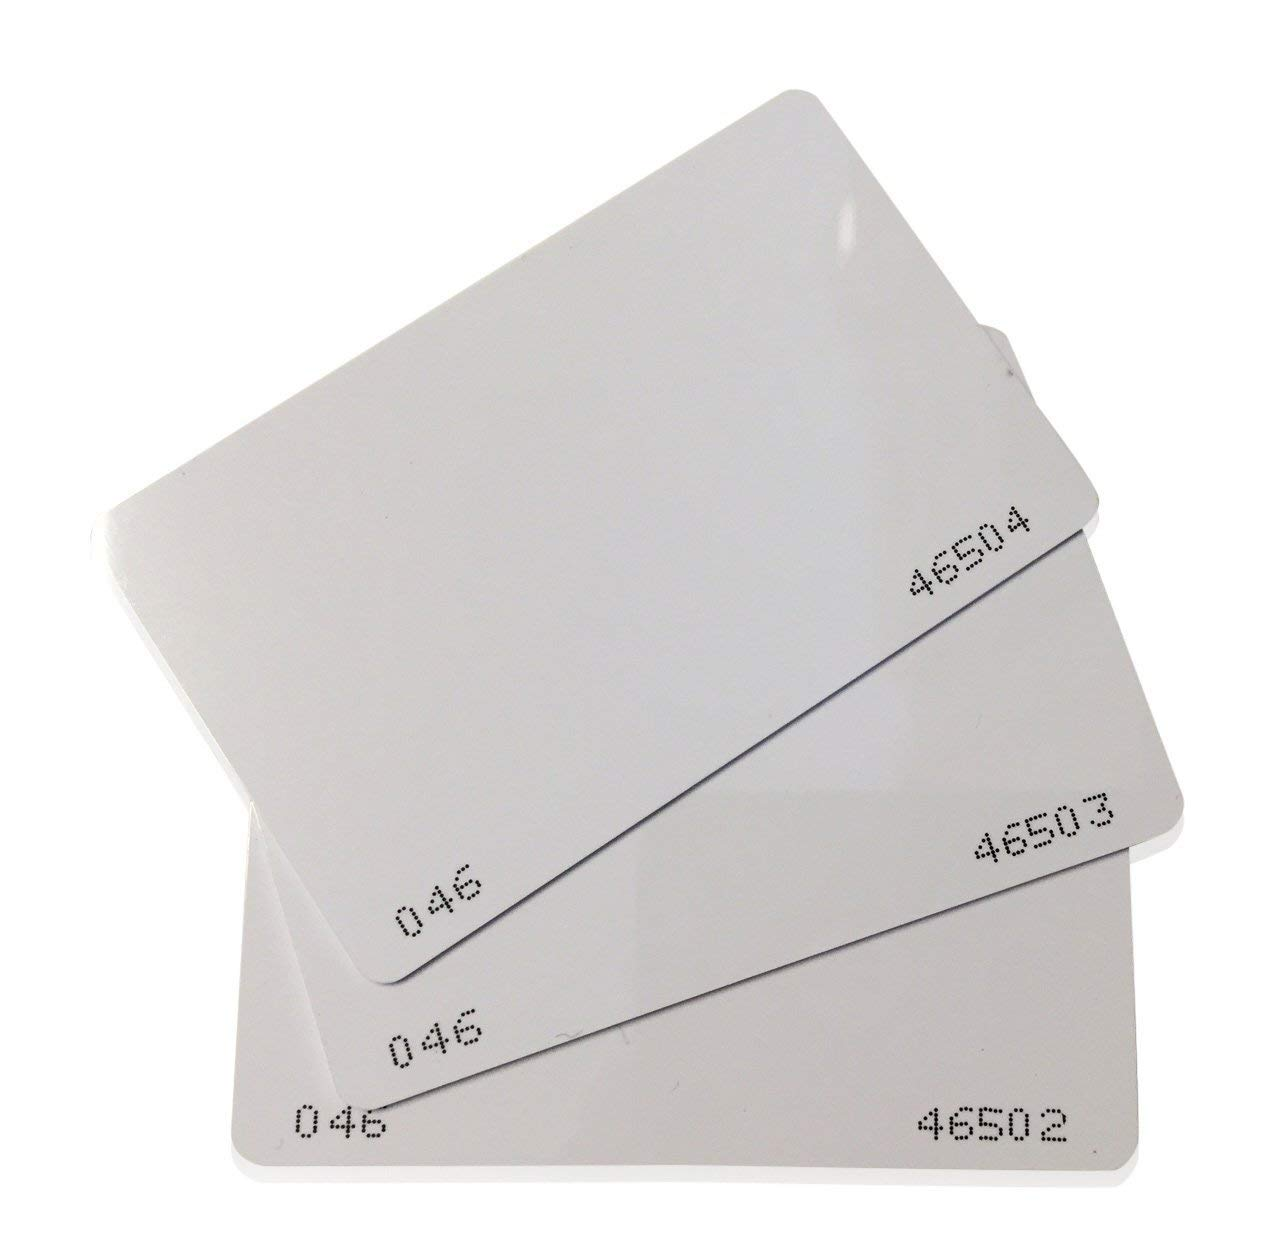 26 Bit Proximity CR80 Cards Weigand Prox Blank Printable Swipe Cards Compatable with ISOProx 1386 1326 H10301 Format Readers. Works with The vast Majority of Access Control Systems JIEWEN